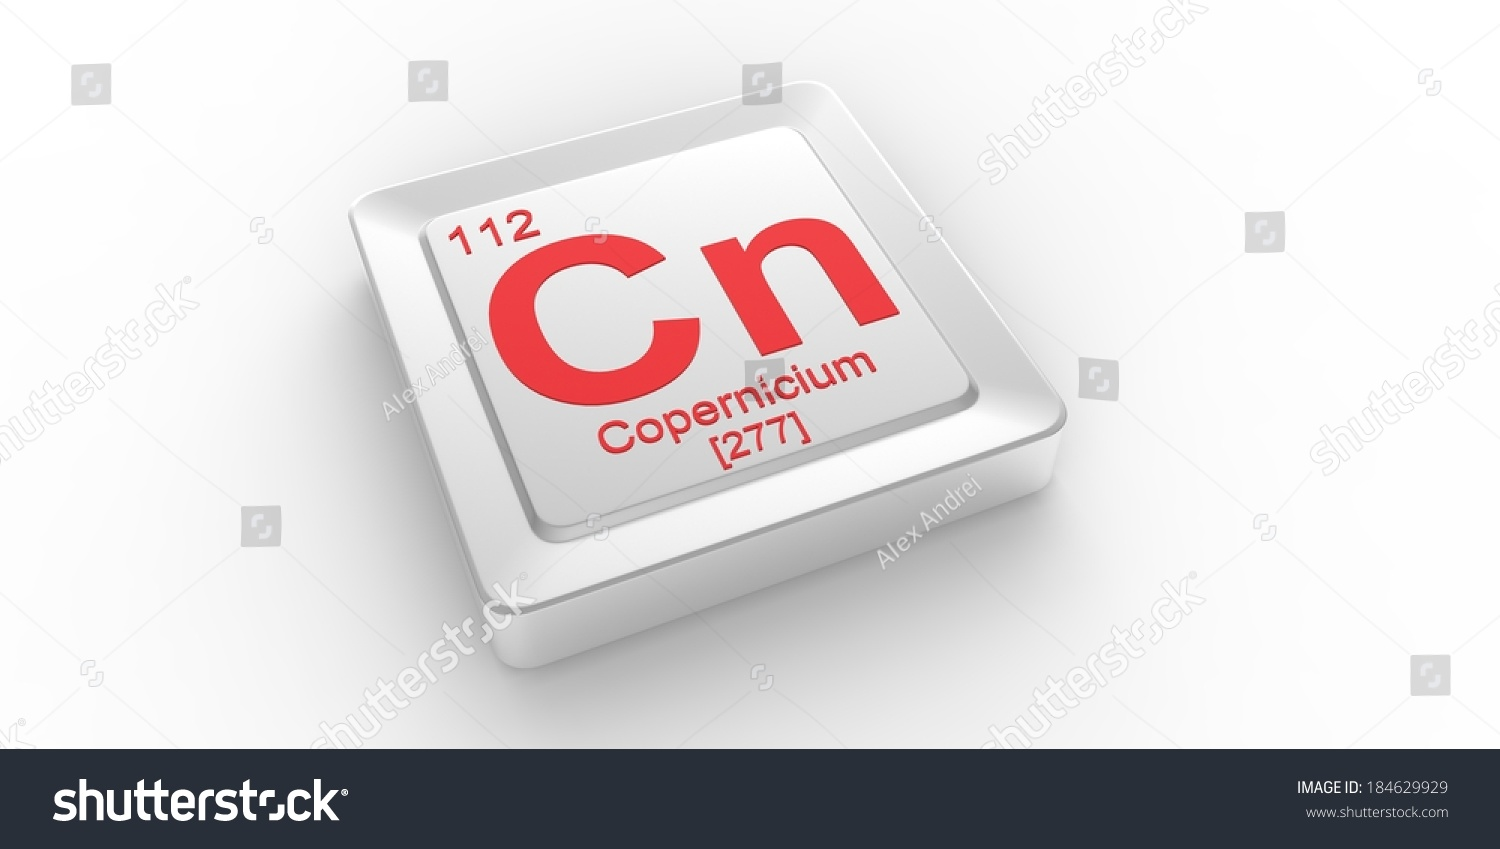 Cn element periodic table choice image periodic table images cn periodic table element images periodic table images cn periodic table choice image periodic table images gamestrikefo Image collections